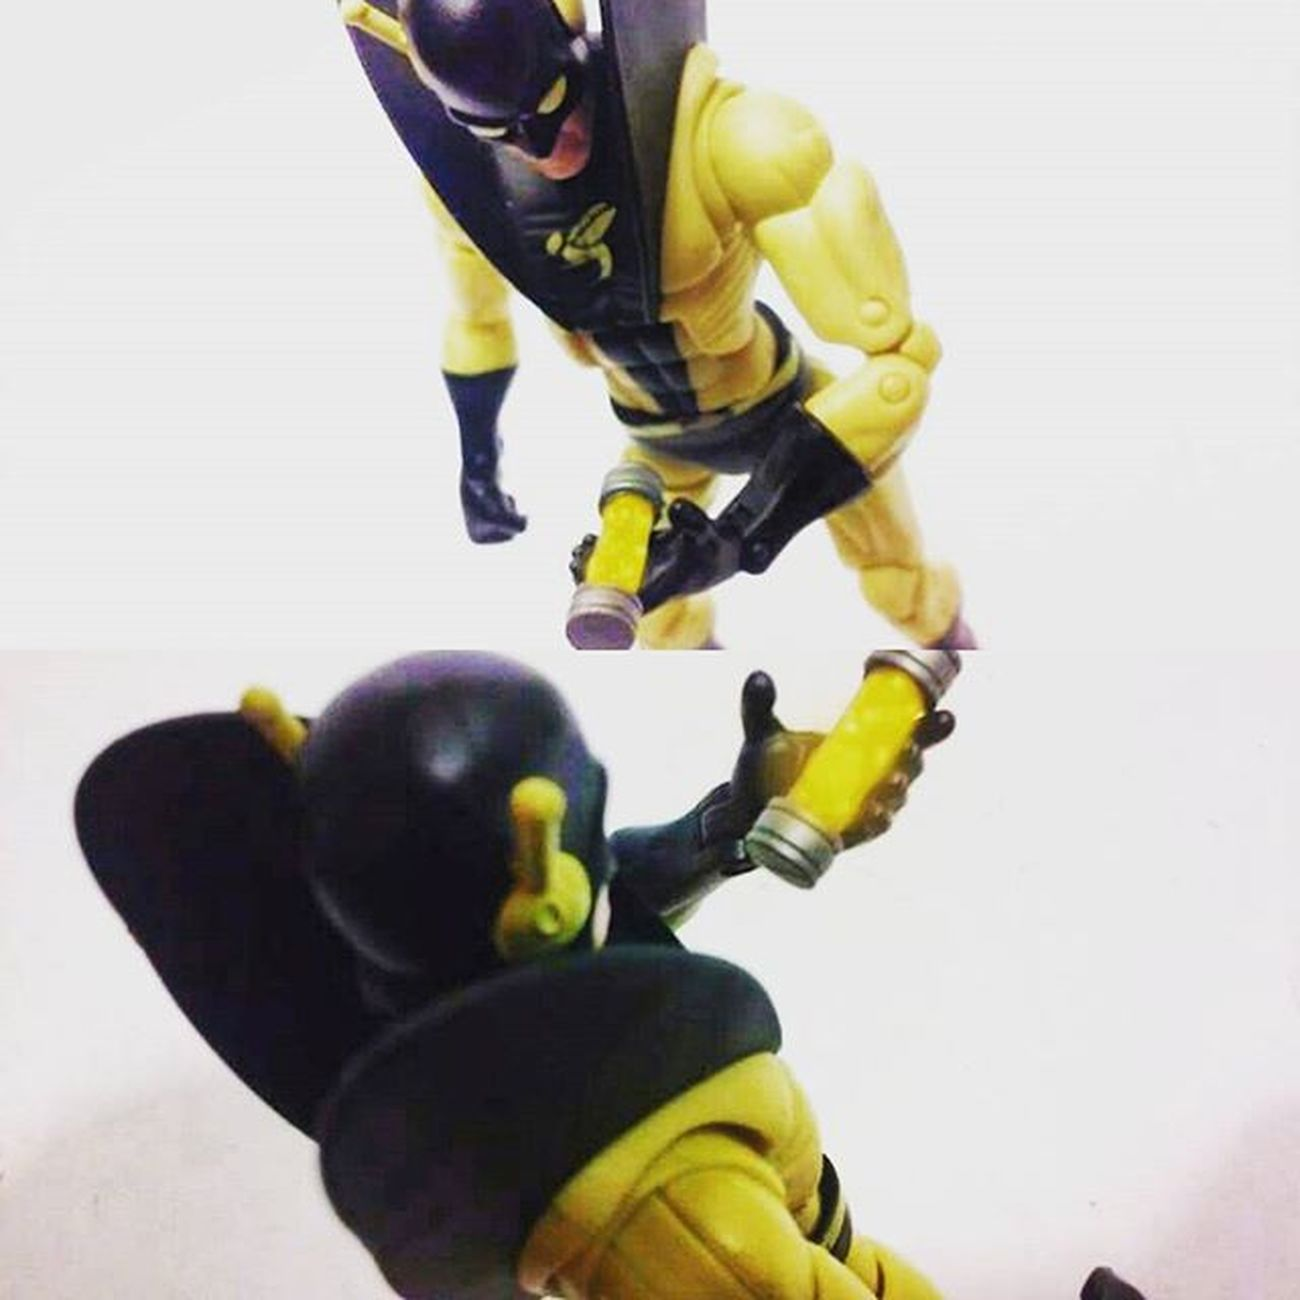 """Ive Done it..i've finally recreated the Pymm's particles.."" Marvellegends Yellowjacket Hankpymm Antman Pymmparticcles Toysrmydrug Toybiz Toys4life Actiontoyart Actionfigures Articulatedcomicbook Theavengers Actionphotography Nerd Hasbro Disney Infiniteseries Avengers Tcb_peekaboo Marvelentertainment Tcb_flyupandaway Daroncross Mcu Figures Figurecollection"